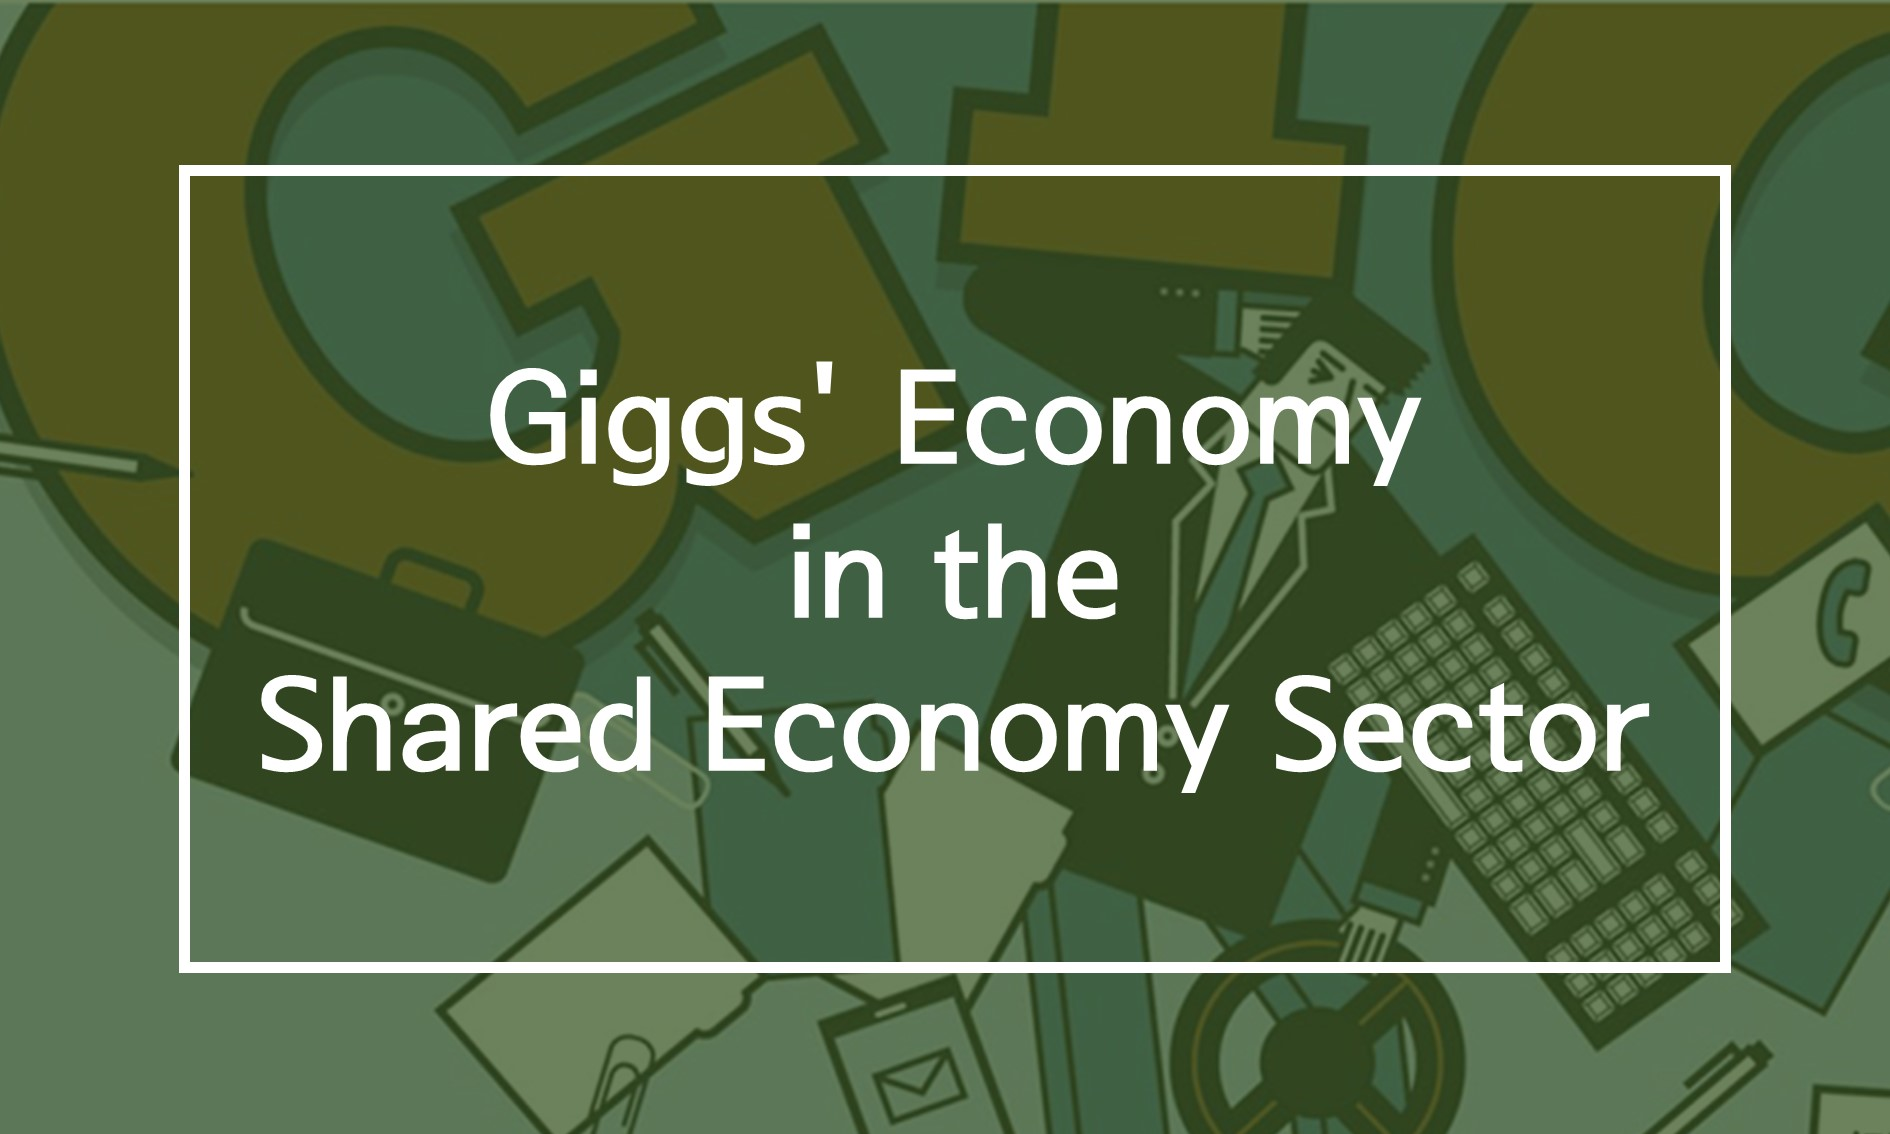 [Resources] Giggs' Economy in the Shared Economy Sector